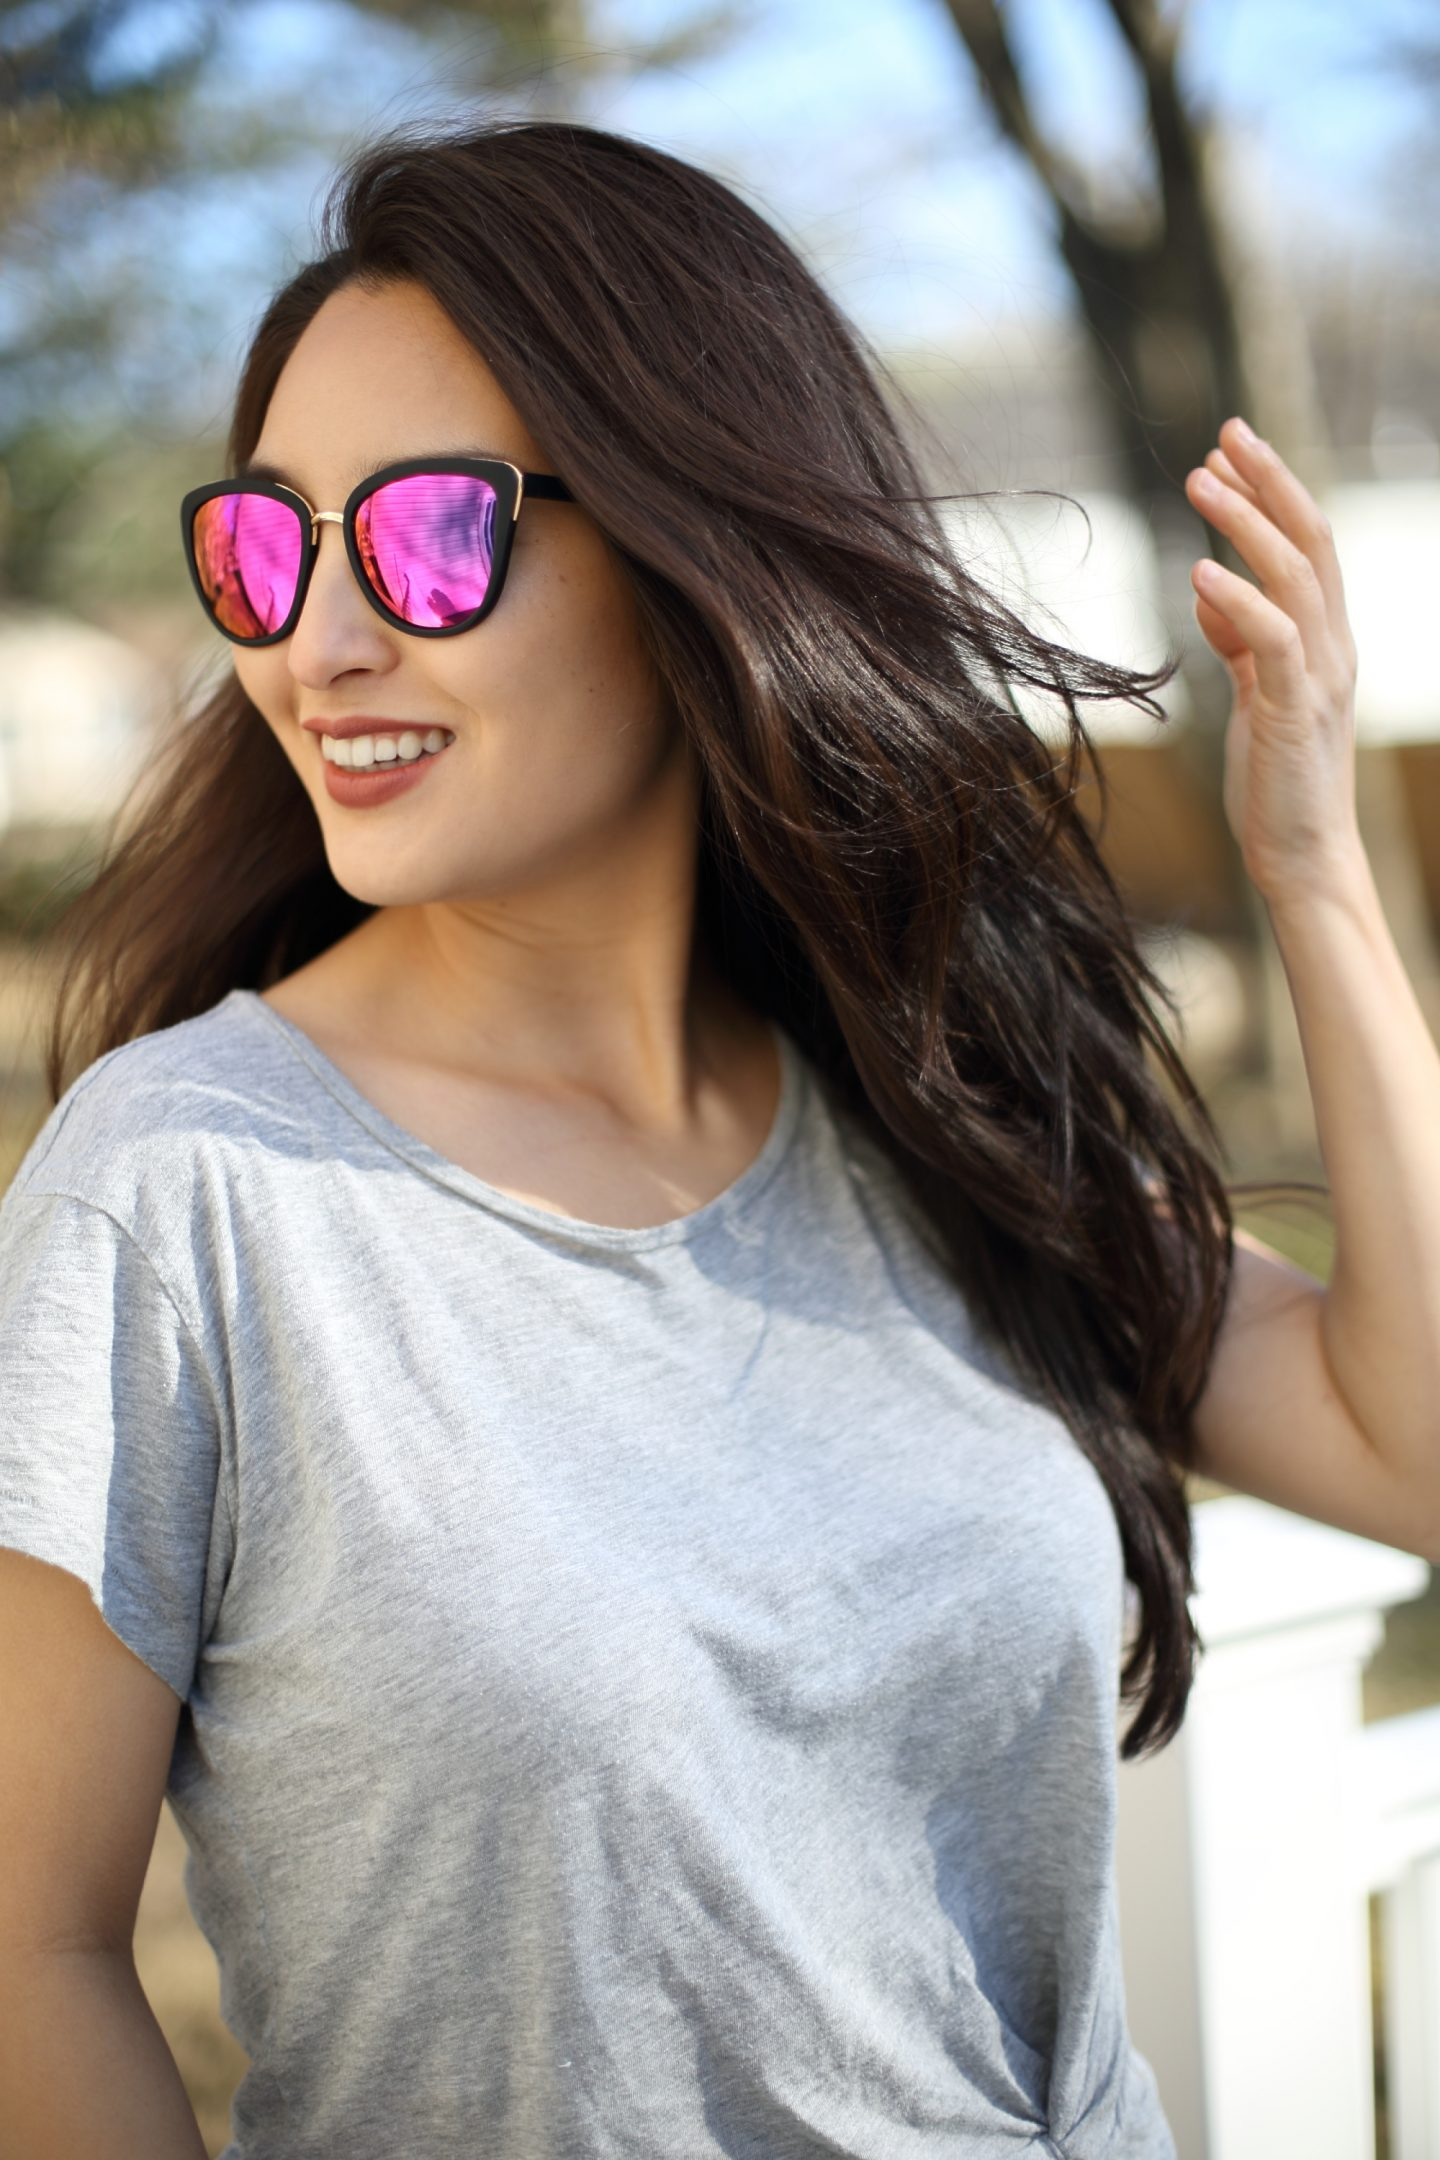 stylish yet affordable sunglasses